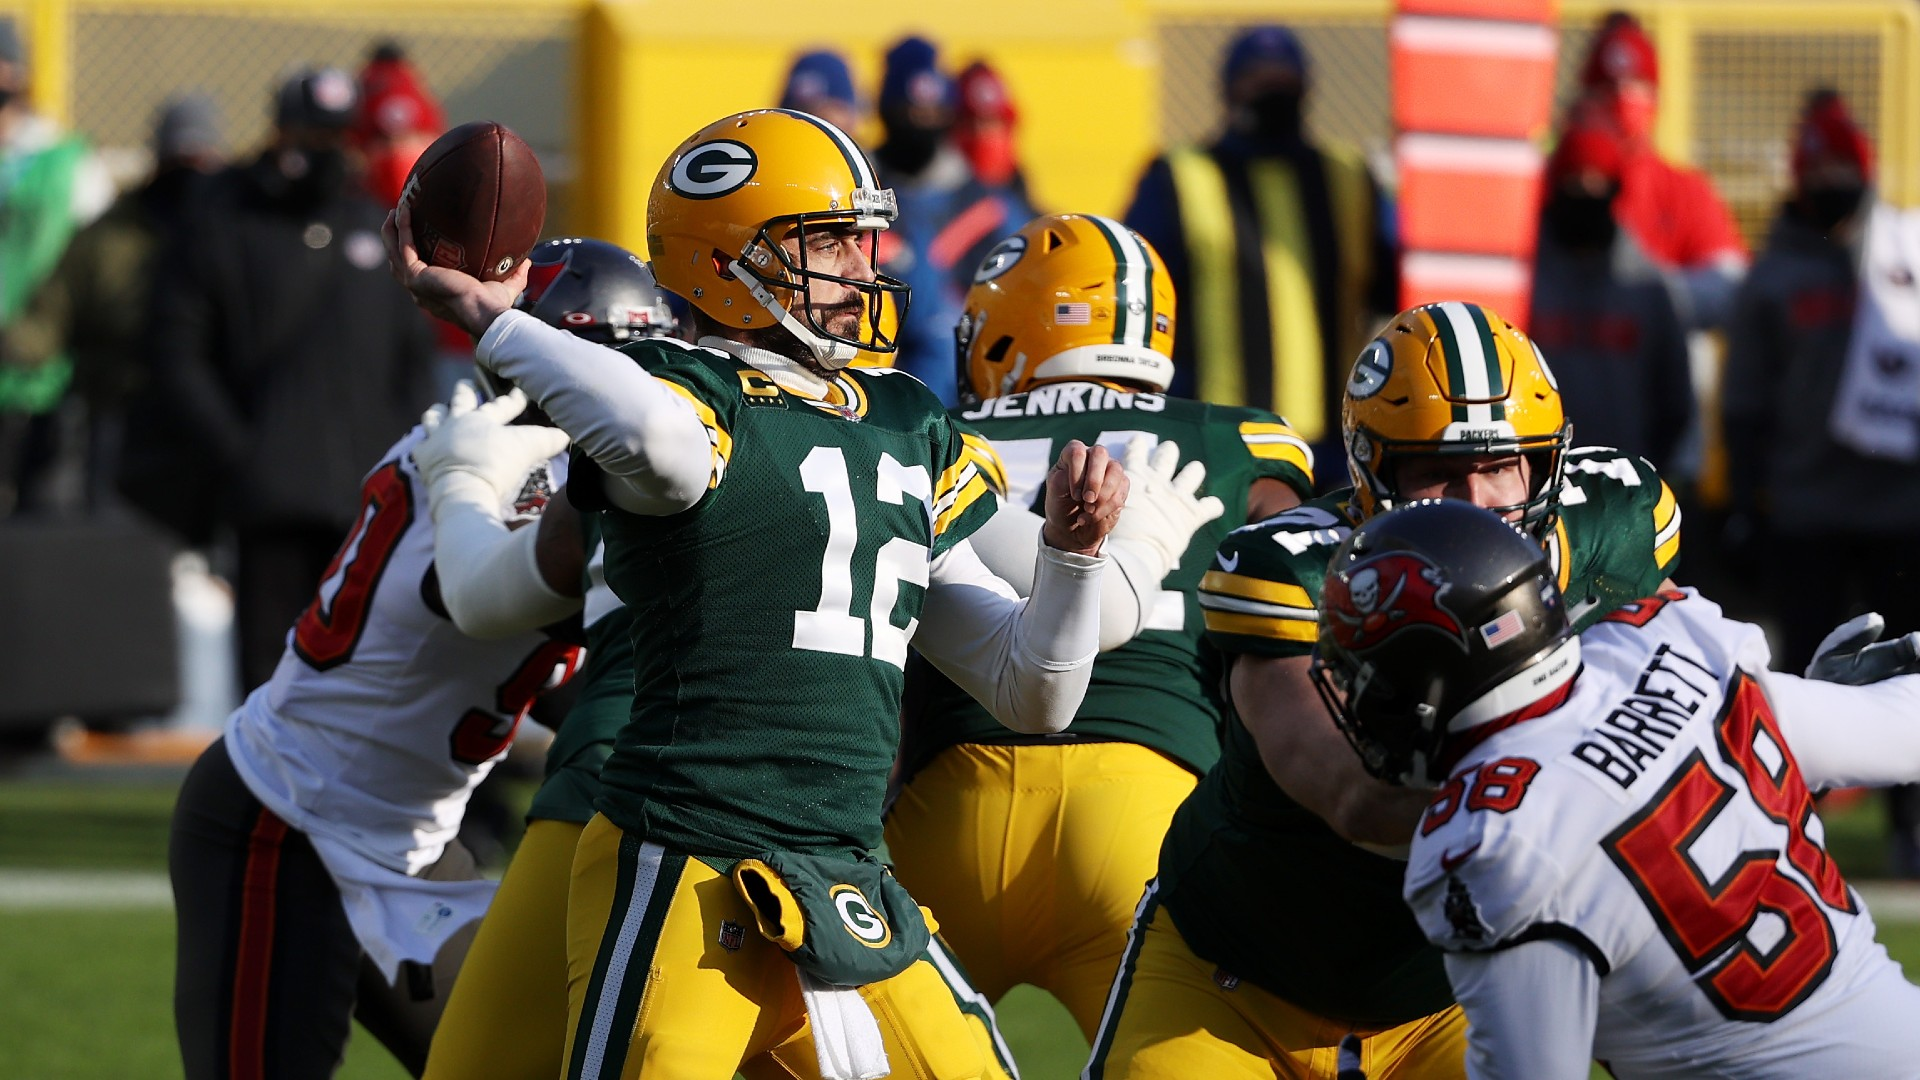 Trade Aaron Rodgers? Packers can entertain that 'mystery' after 2021 season